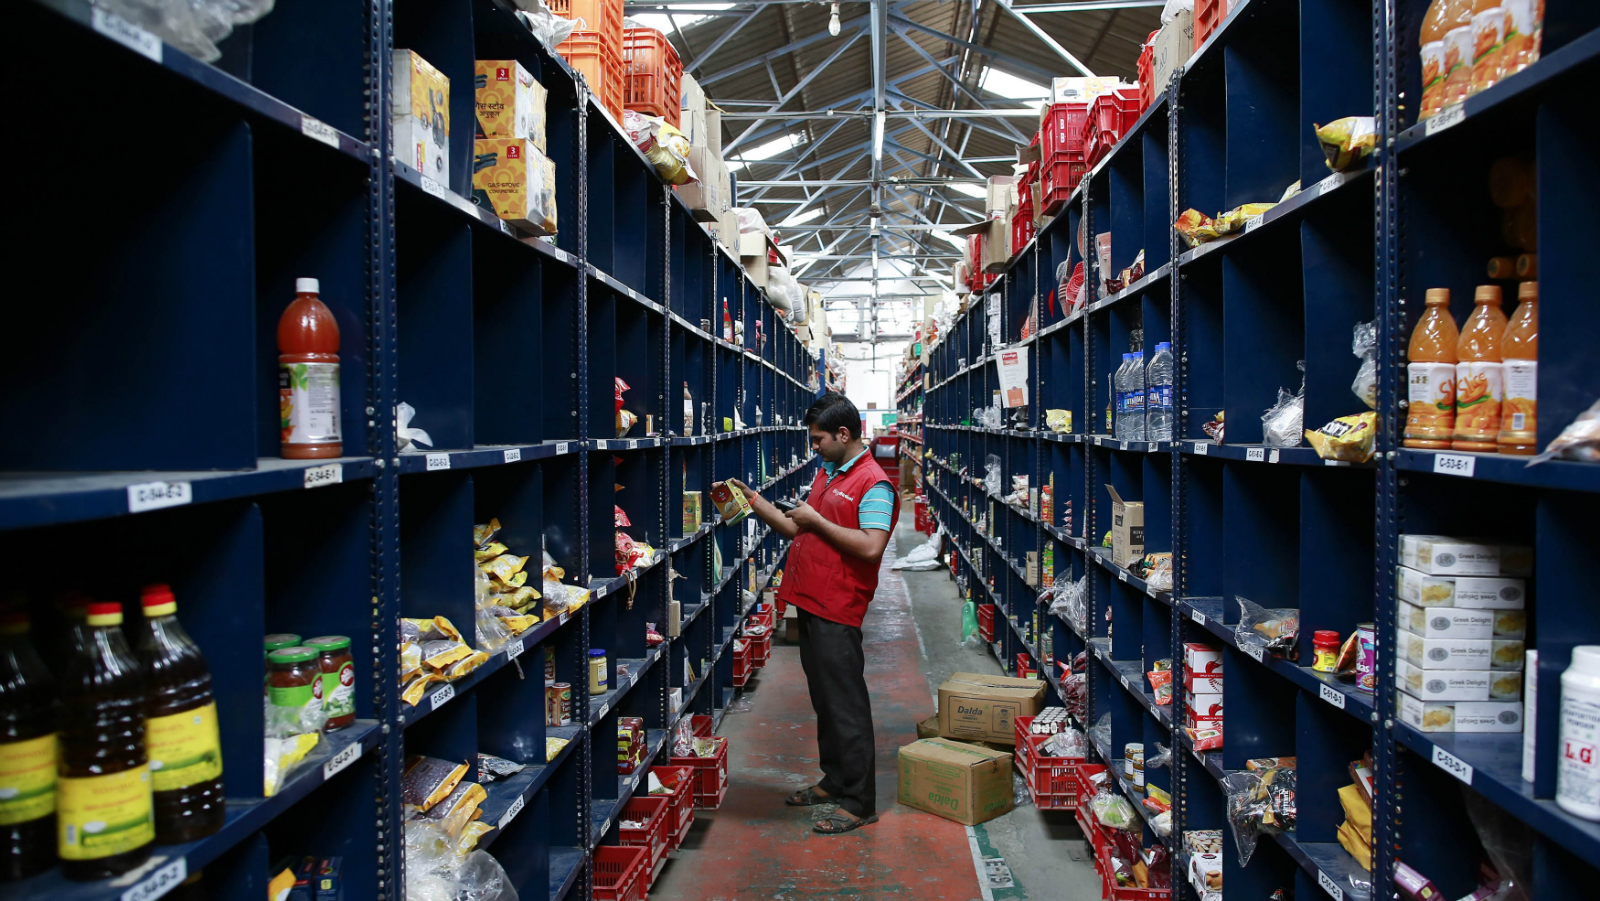 An employee scans a package for an order at a Big Basket warehouse on the outskirts of Mumbai November 4, 2014. Put off by snarled city traffic and a shortage of parking, more Indians are shopping for groceries online, helping e-tailers like Bigbasket.com and Localbanya.com turn in profits while supermarkets are struggling. Picture taken November 4.